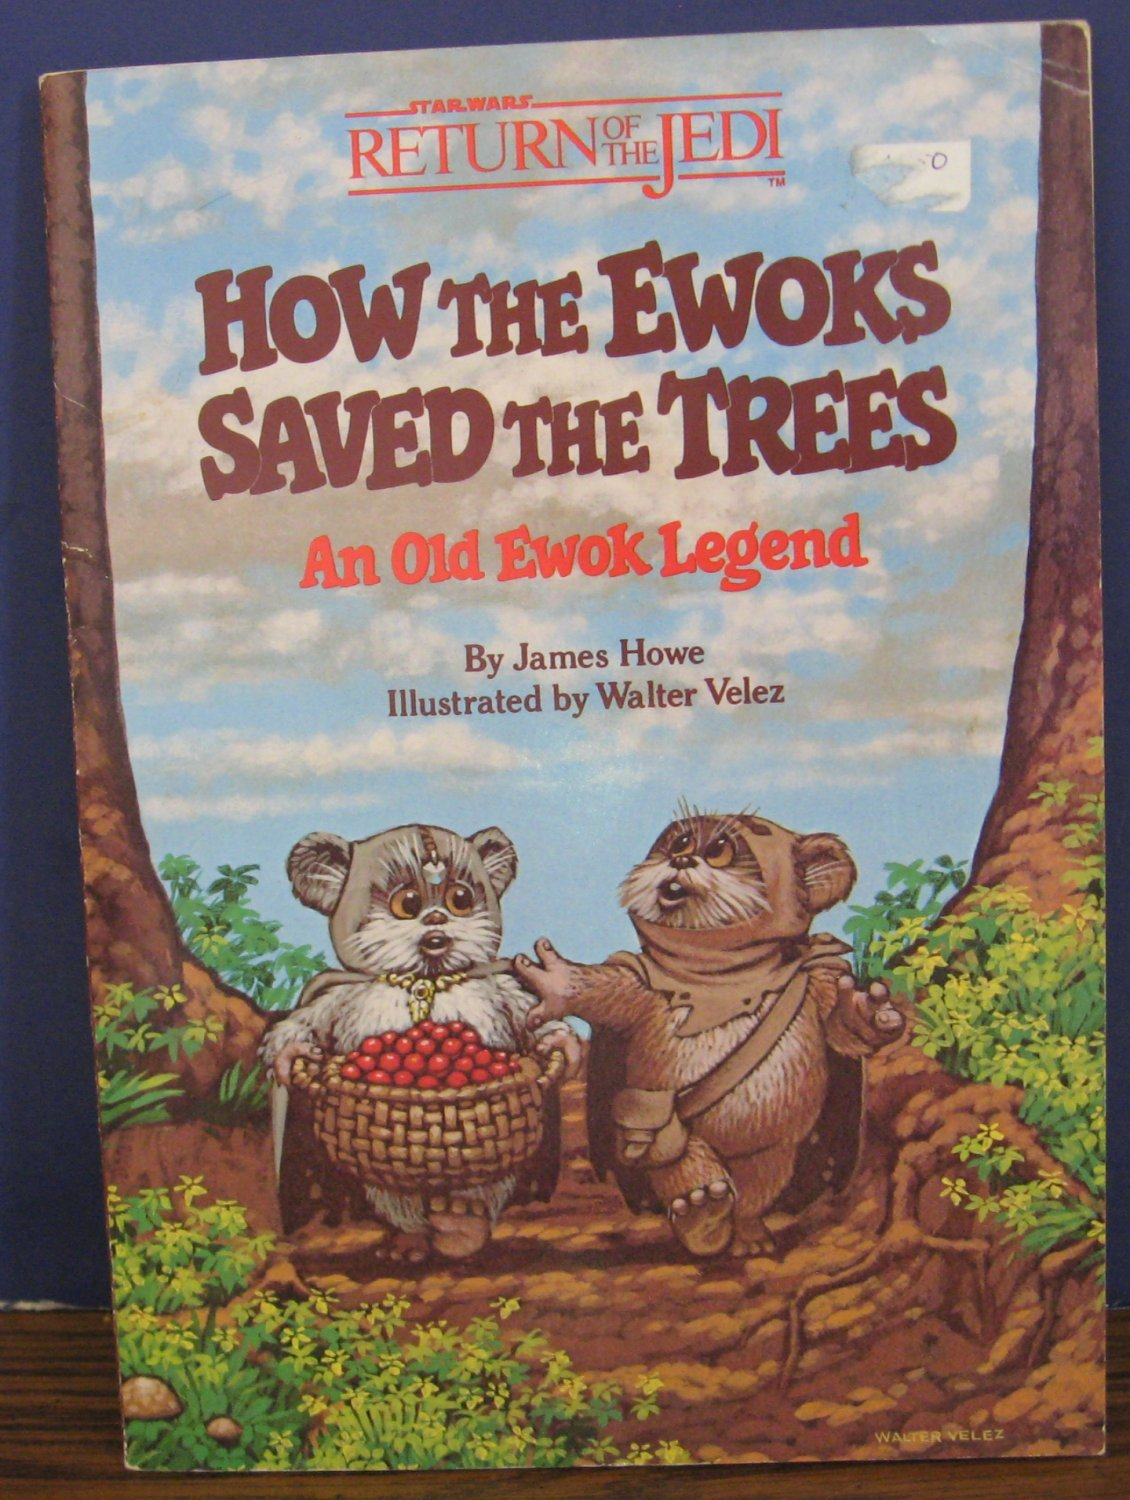 Star Wars Return of the Jedi How the Ewoks Saved the Trees - Random House - 1984 Vintage